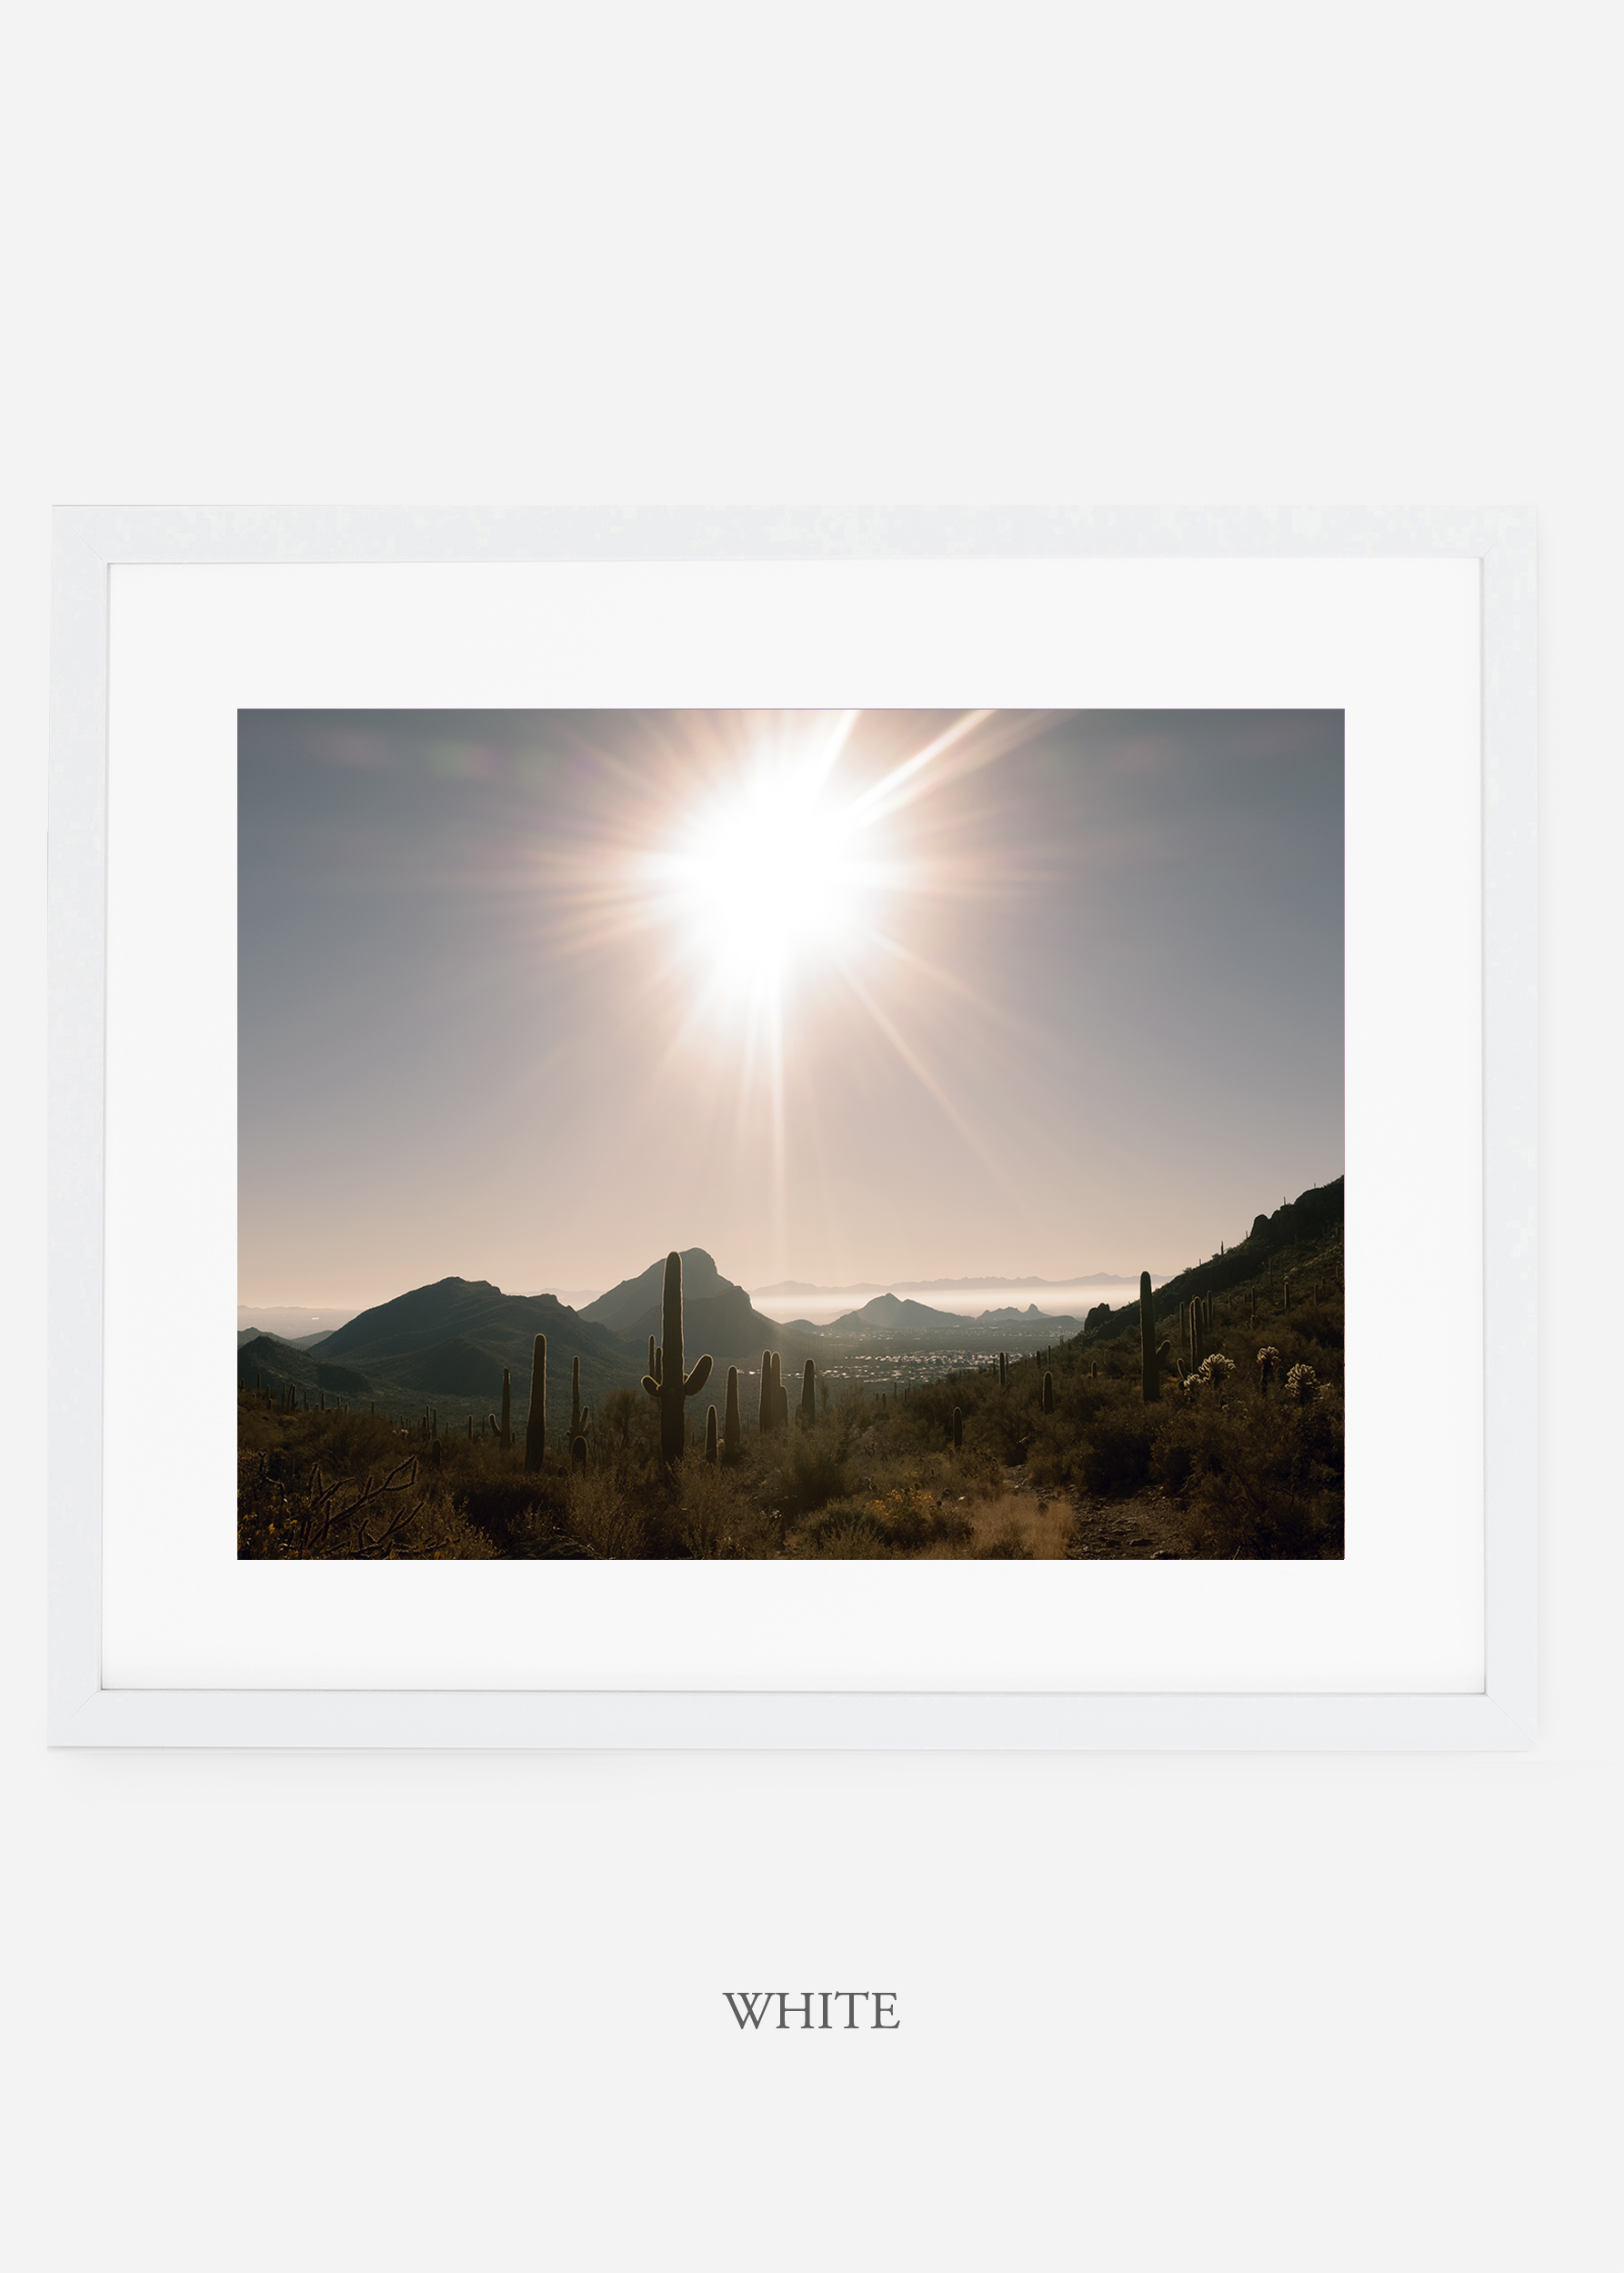 whiteframe-saguaroNo.15-wildercalifornia-art-wallart-cactusprint-homedecor-prints-arizona-botanical-artwork-interiordesign.jpg